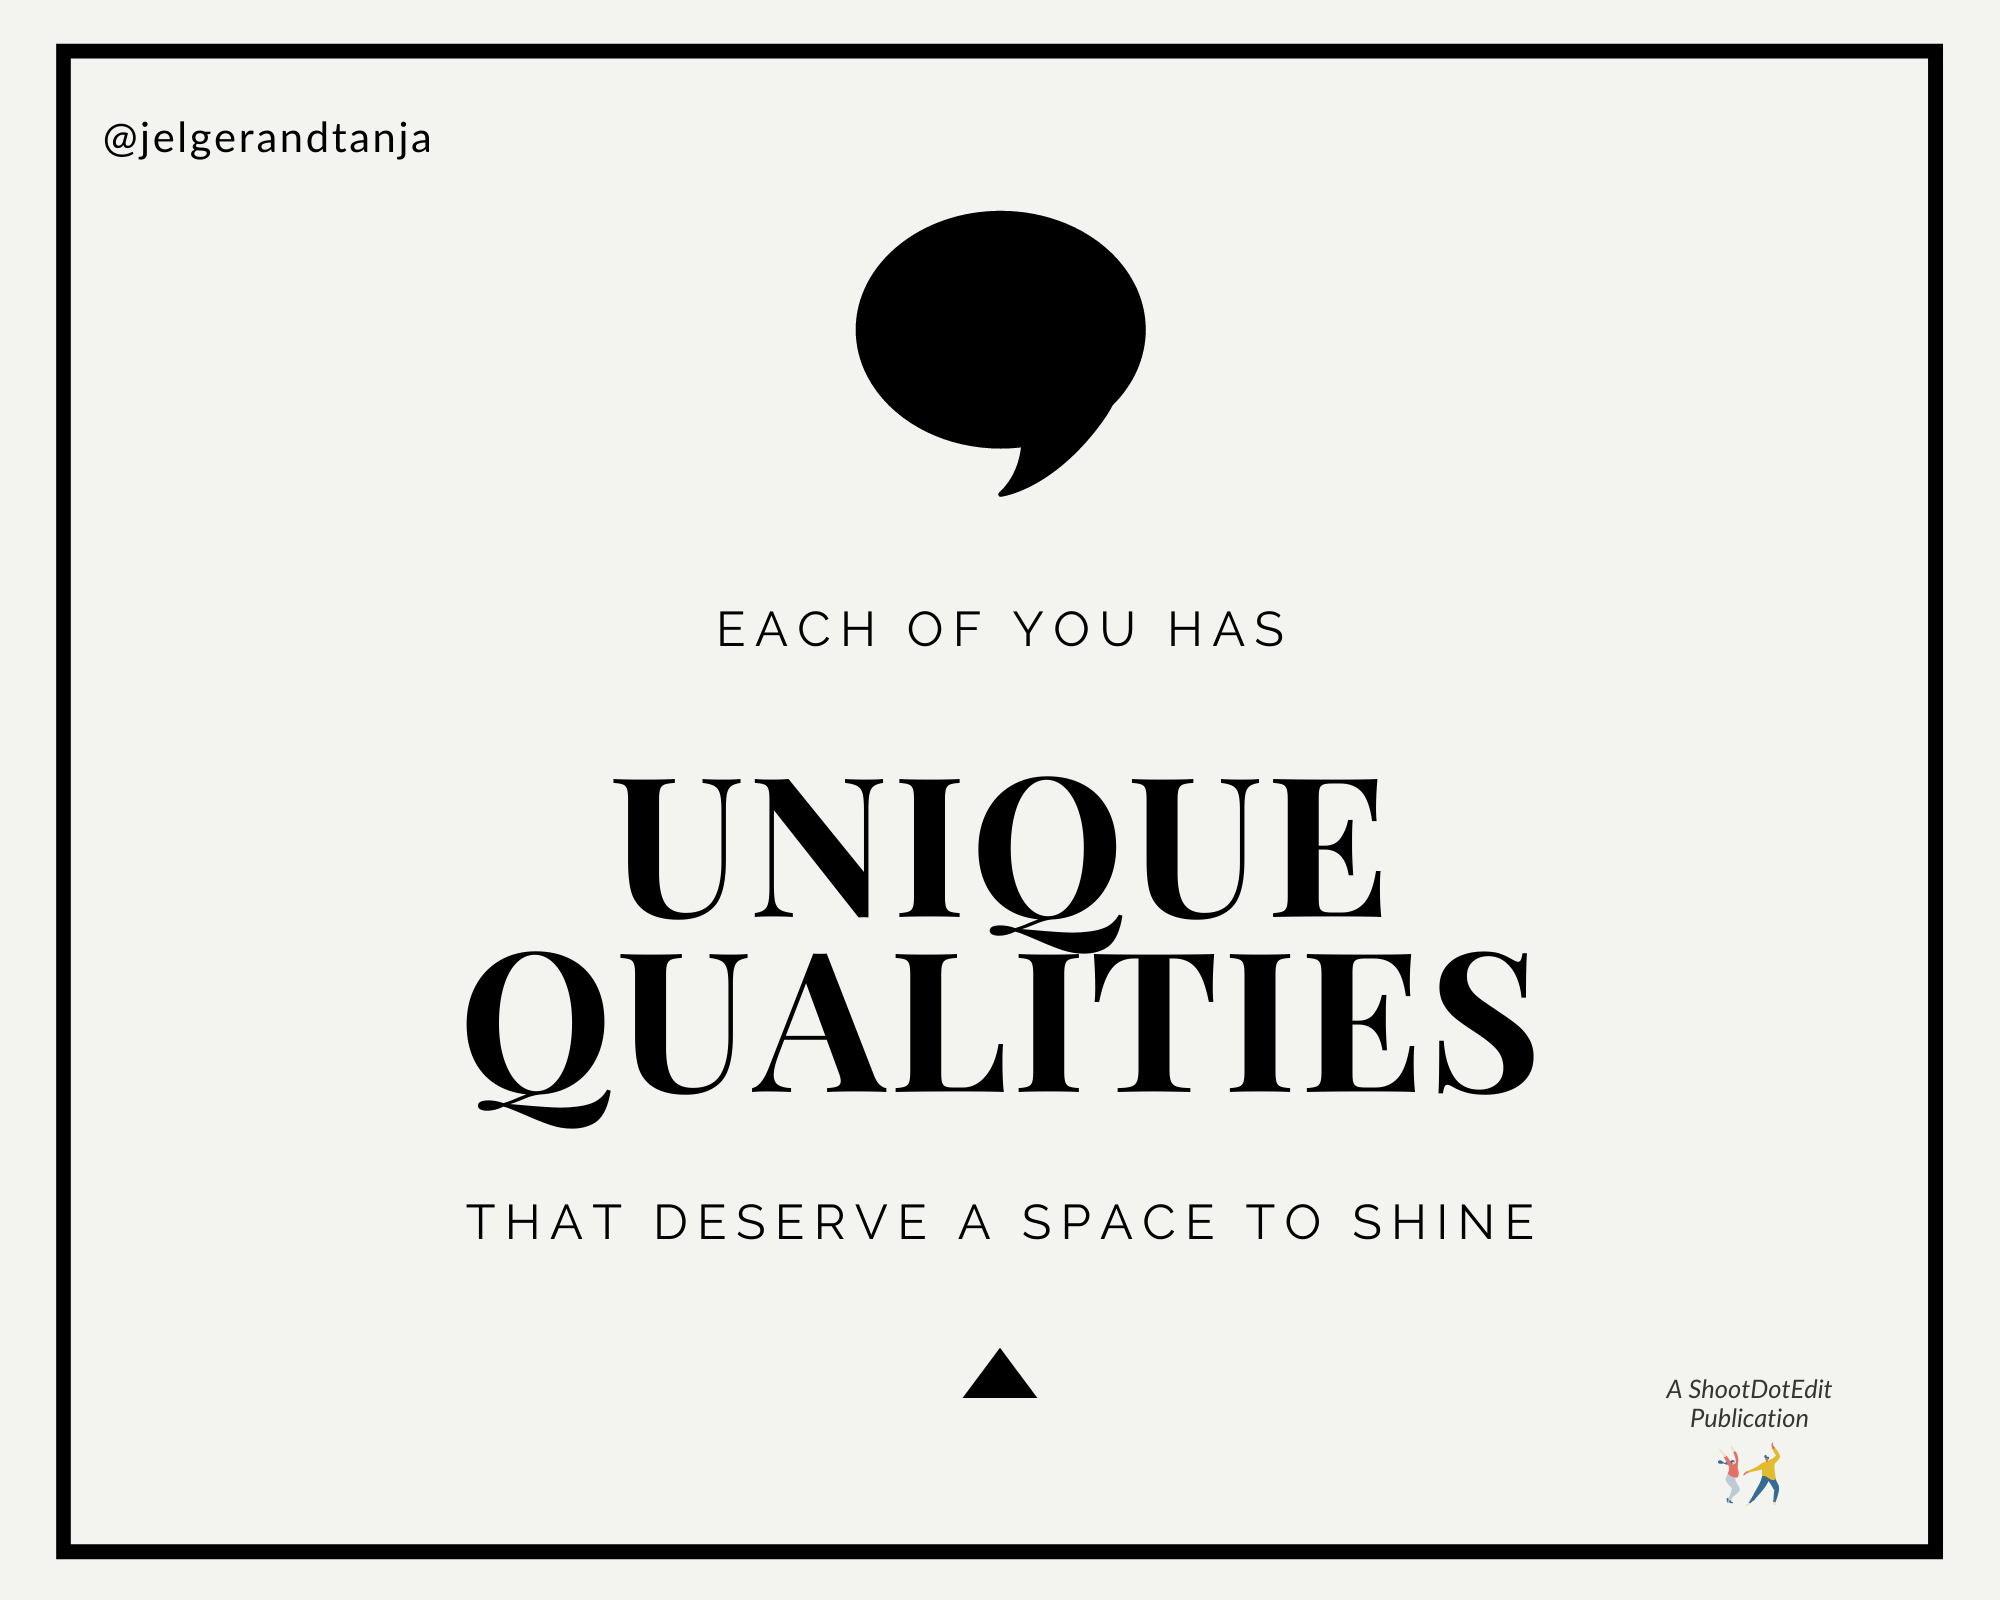 Infographic stating each of you has unique qualities that deserve a space to shine